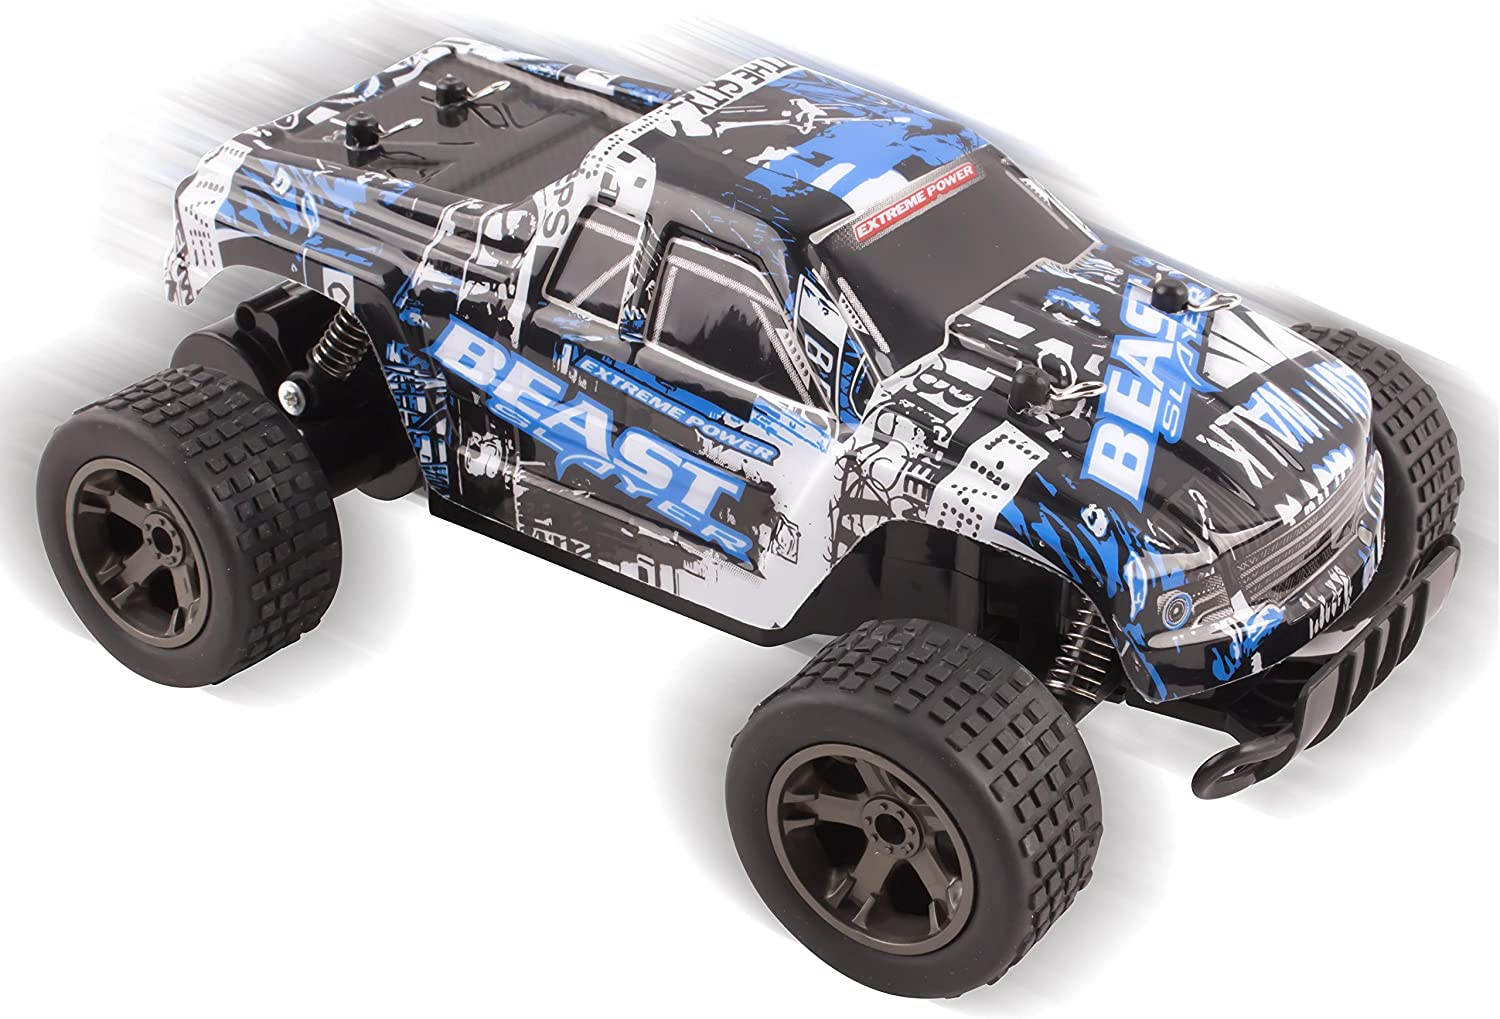 Vokodo Cheetah King Remote Control RC Buggy Truggy Truck Car 2.4 GHz System 1:18 Scale Size RTR w/ Working Suspension, High Speed, Radio Control ...